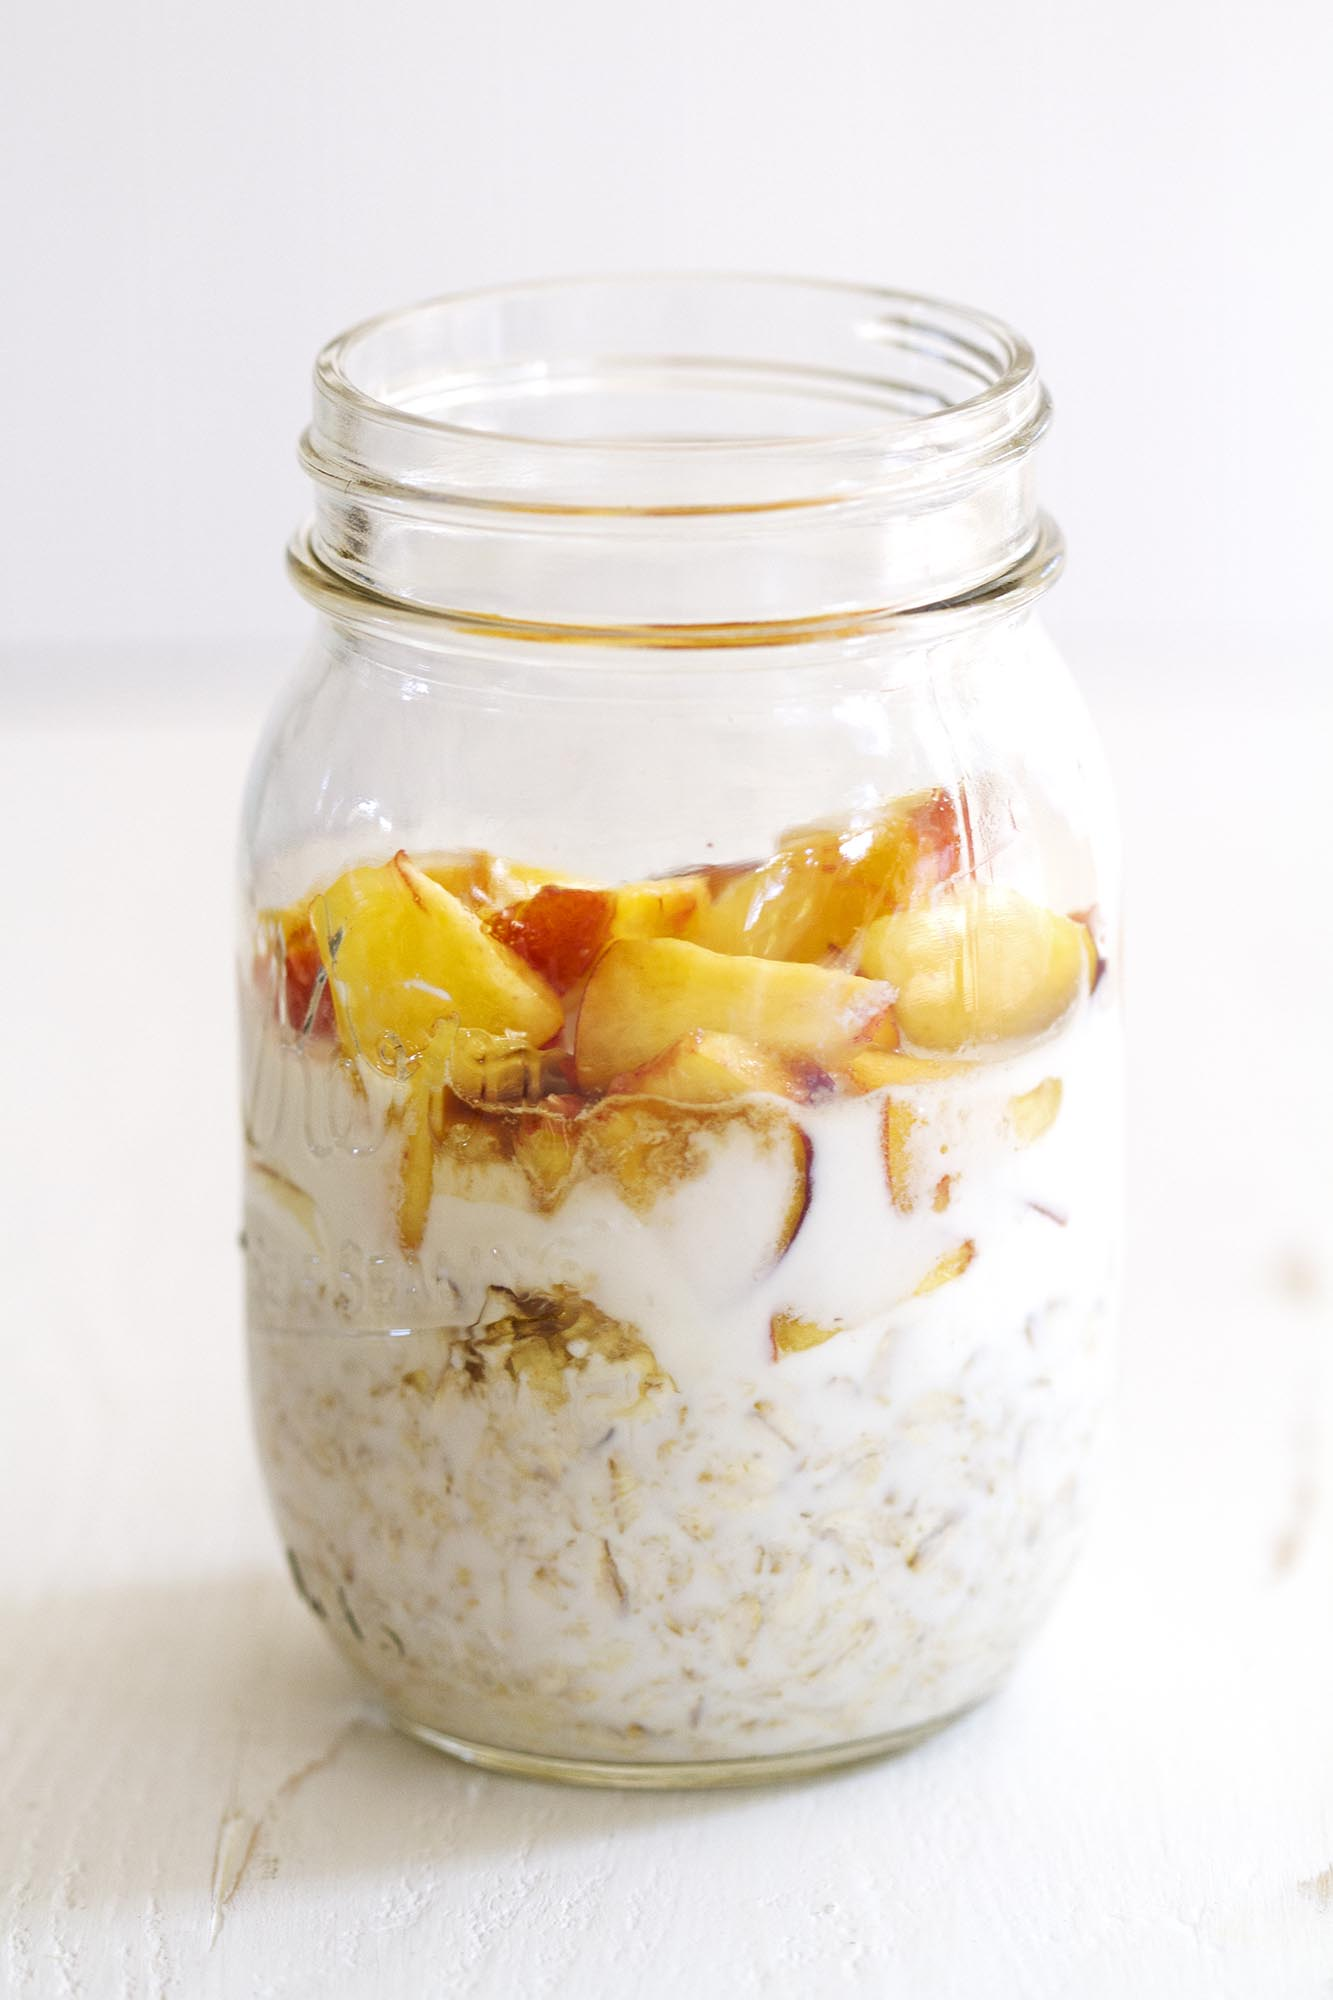 Peaches and Cream Overnight Oats | girlversusdough.com @girlversusdough